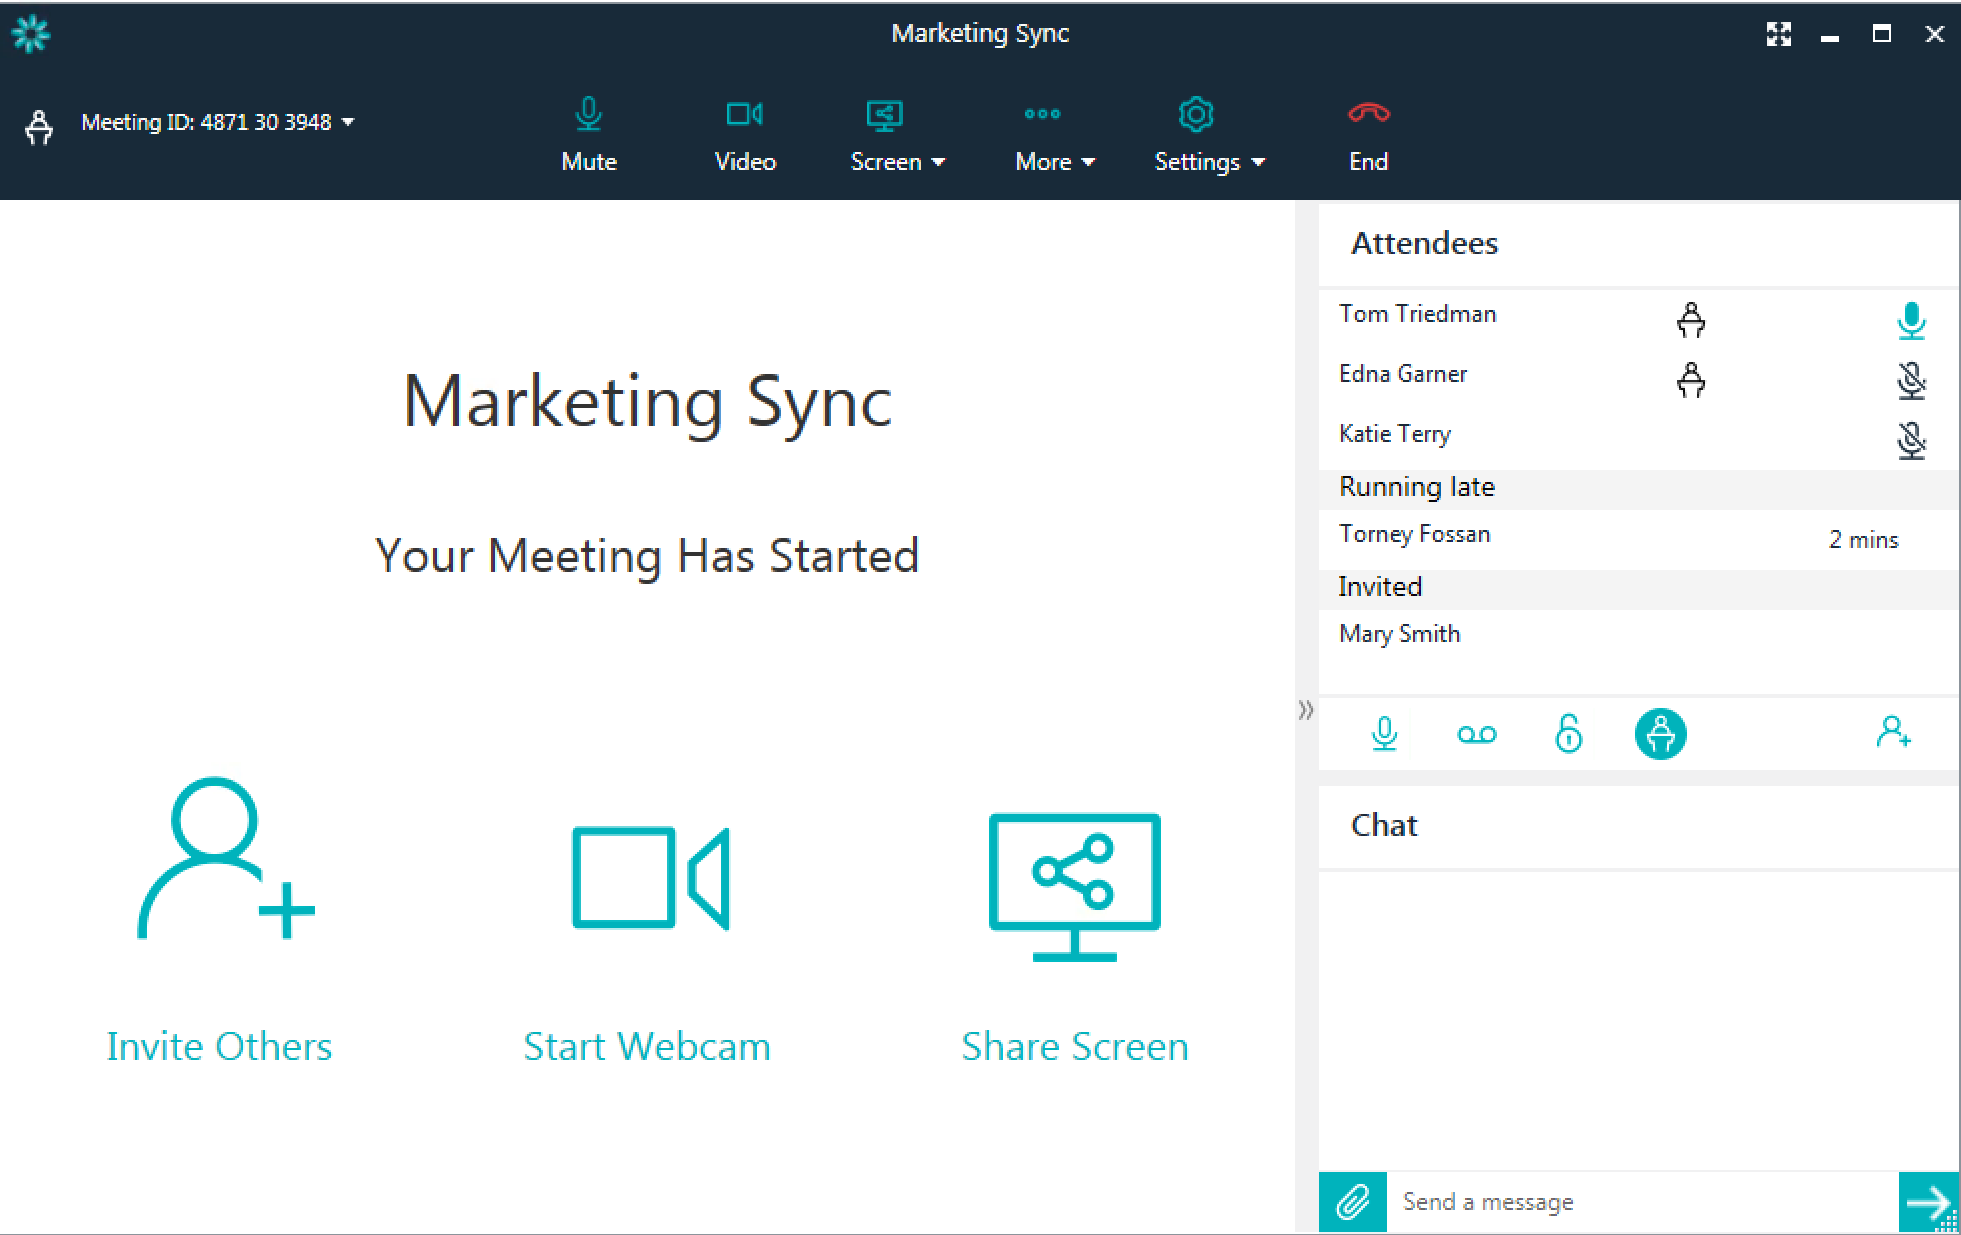 Users can view which participants are present in a meeting using the visual roster